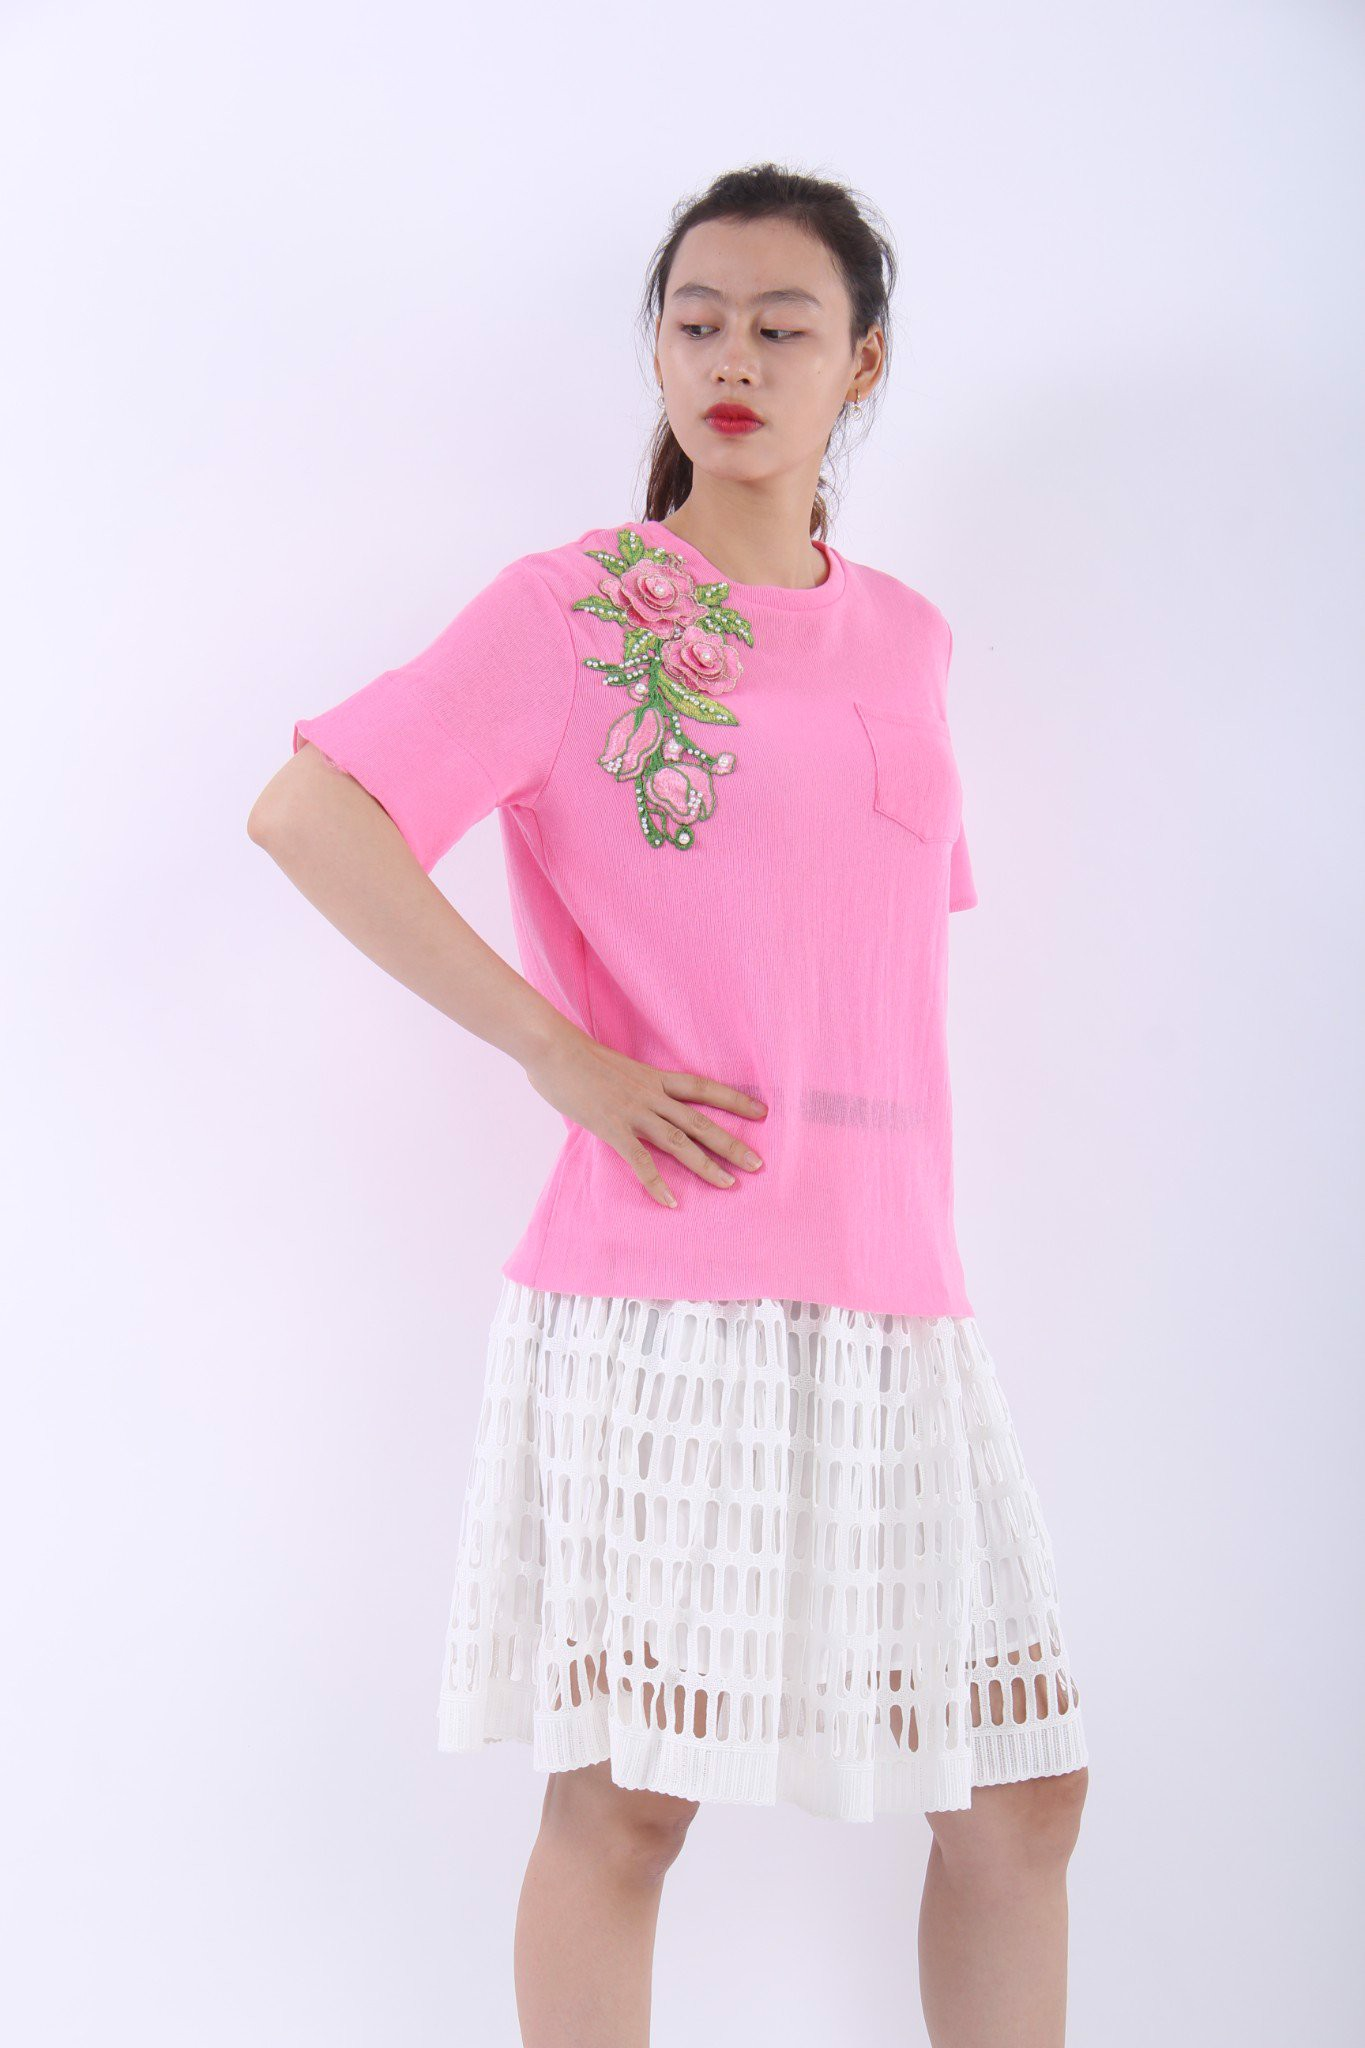 3D rose embroidery pink T-Shirt